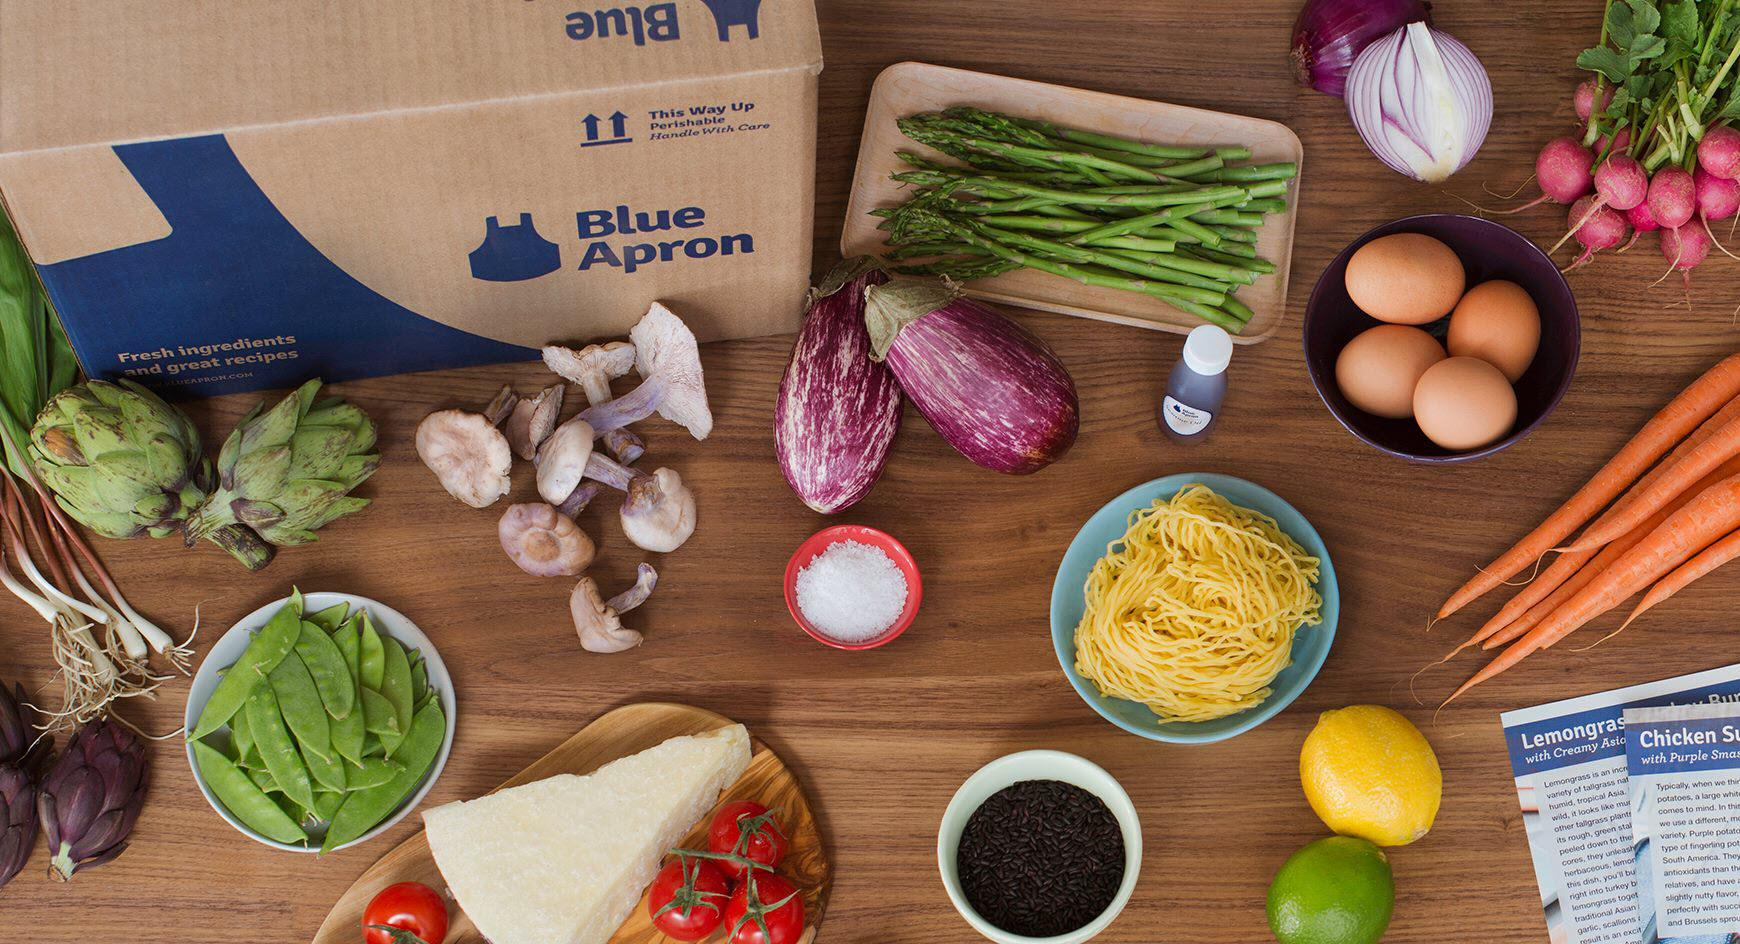 Blue apron operations